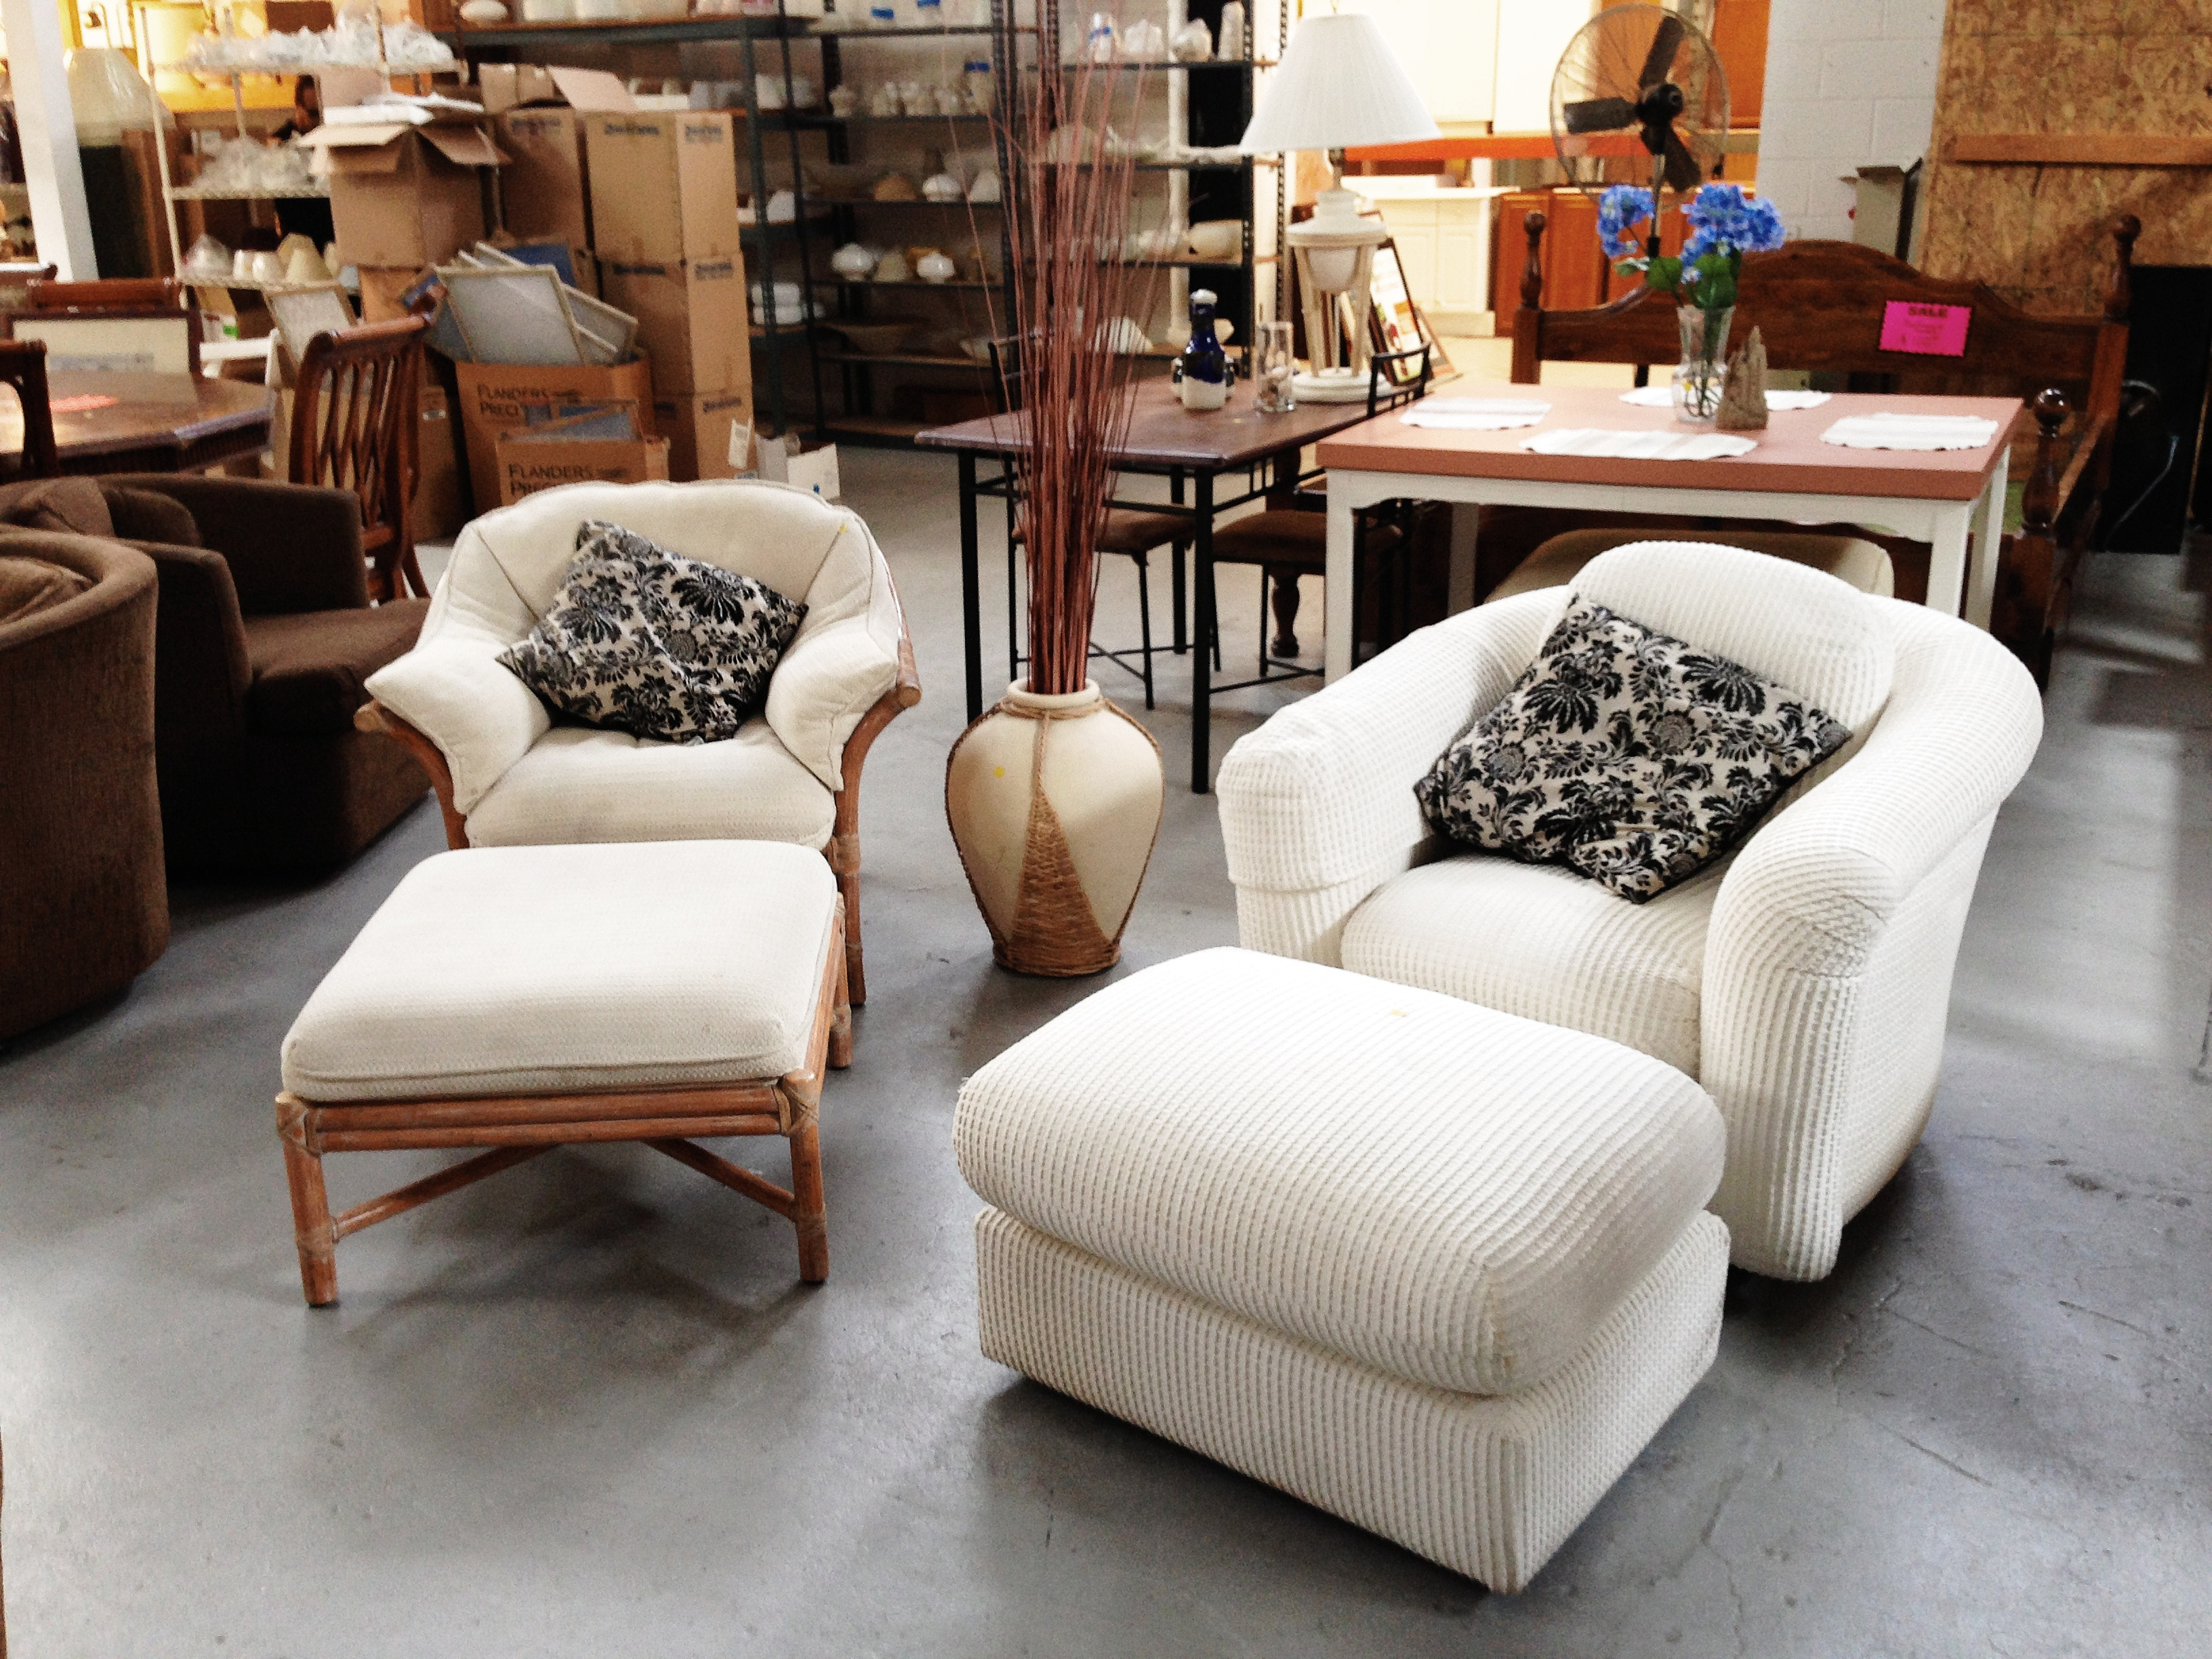 Donate To The Restore With Regard To Escondido Sofa Chairs (Image 8 of 20)